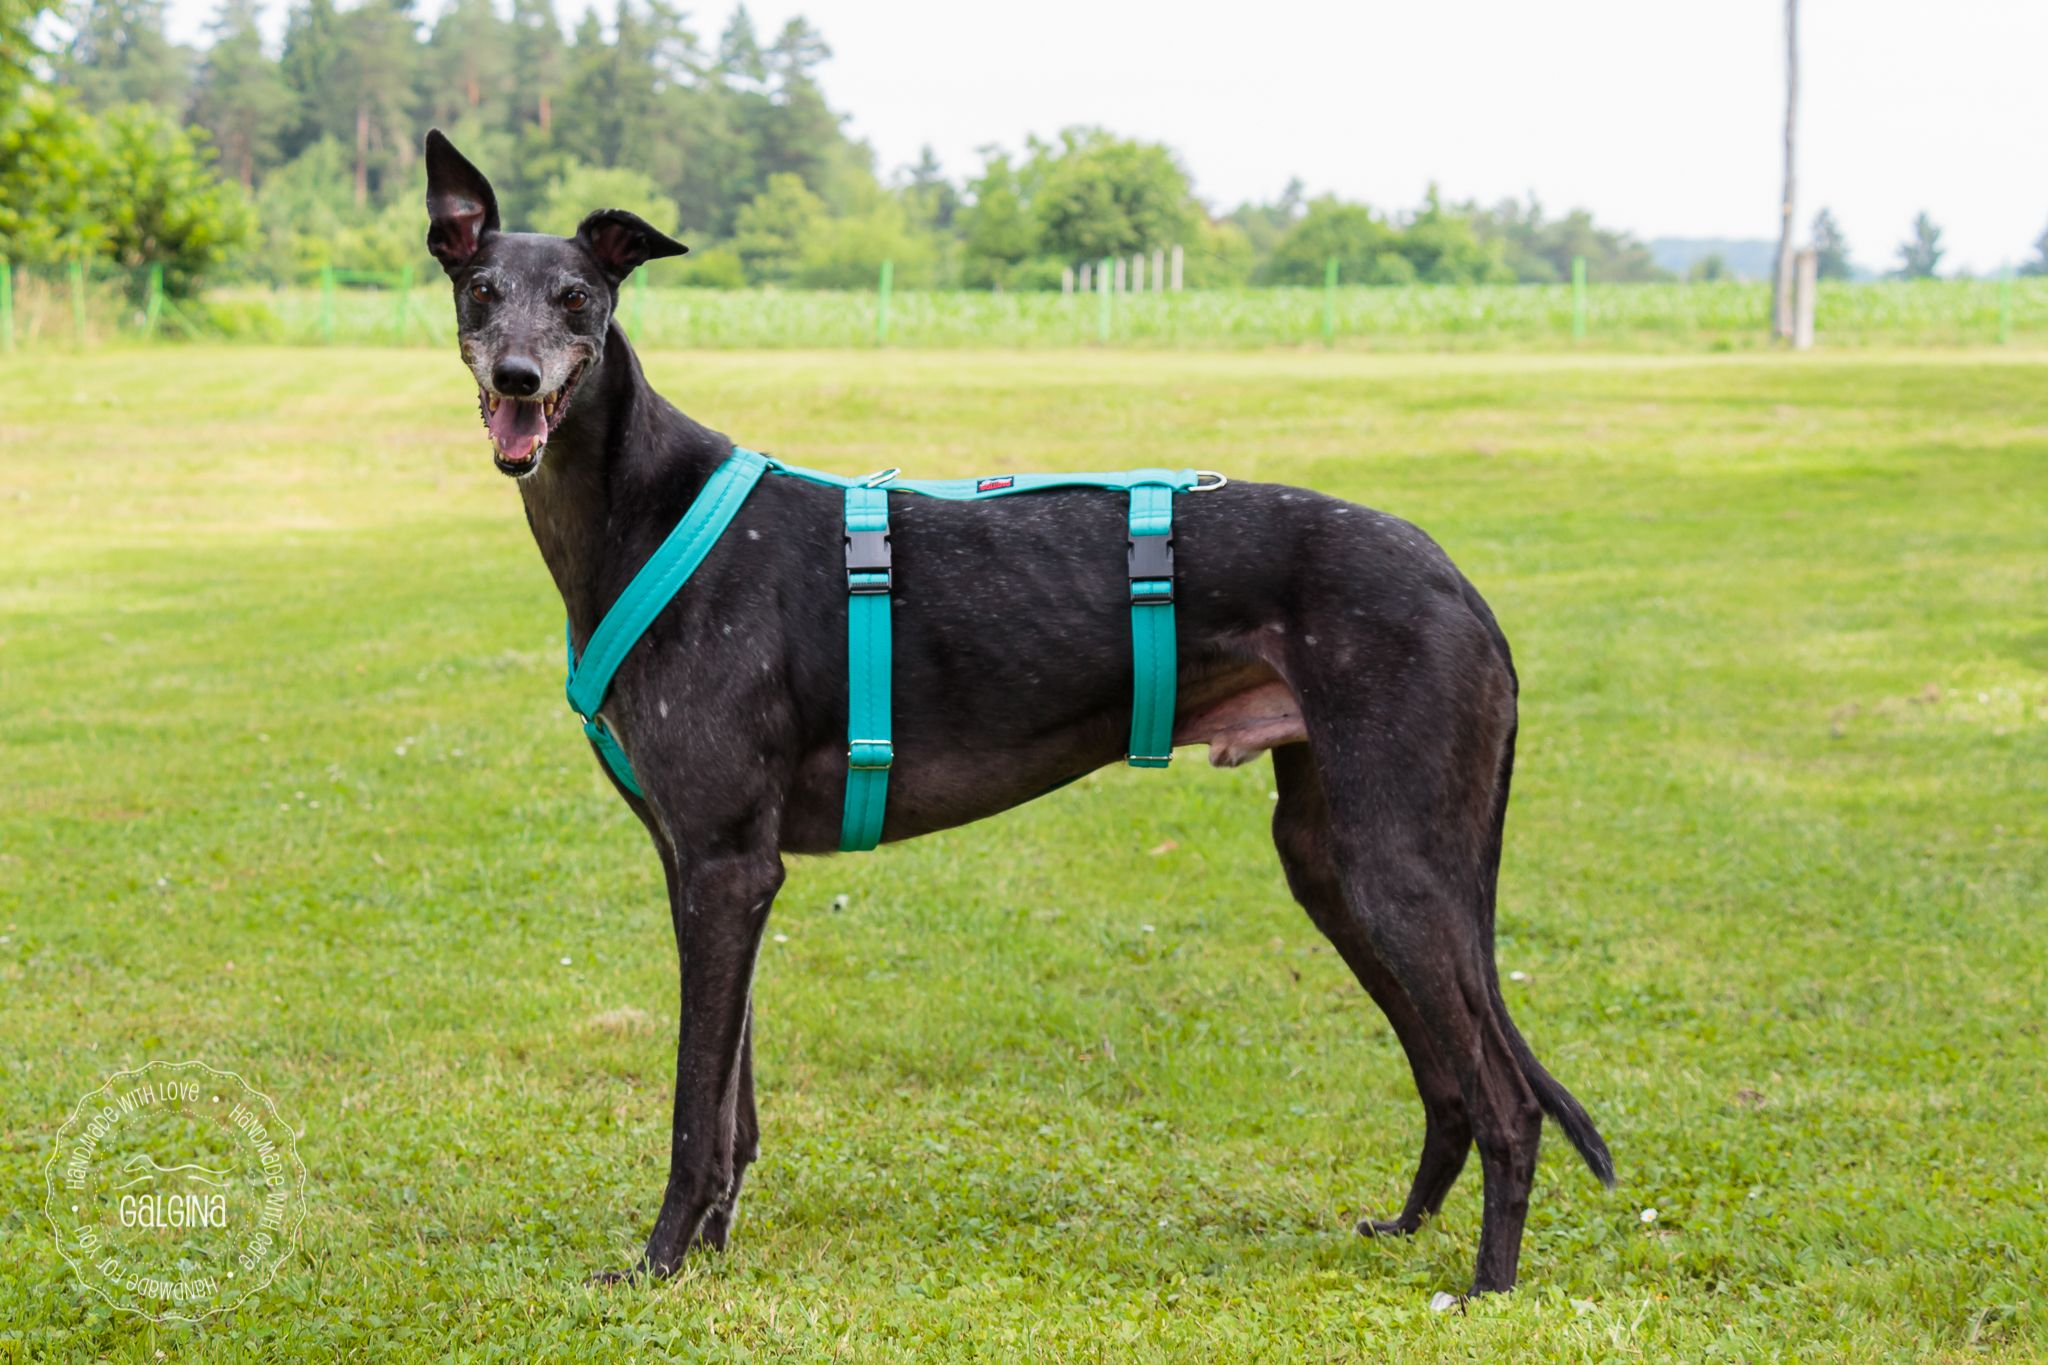 d2a6d463c6f0d8761e0c8b7d551f6c1e sighthound harness, made of softshell for greyhound, galgo, lurcher